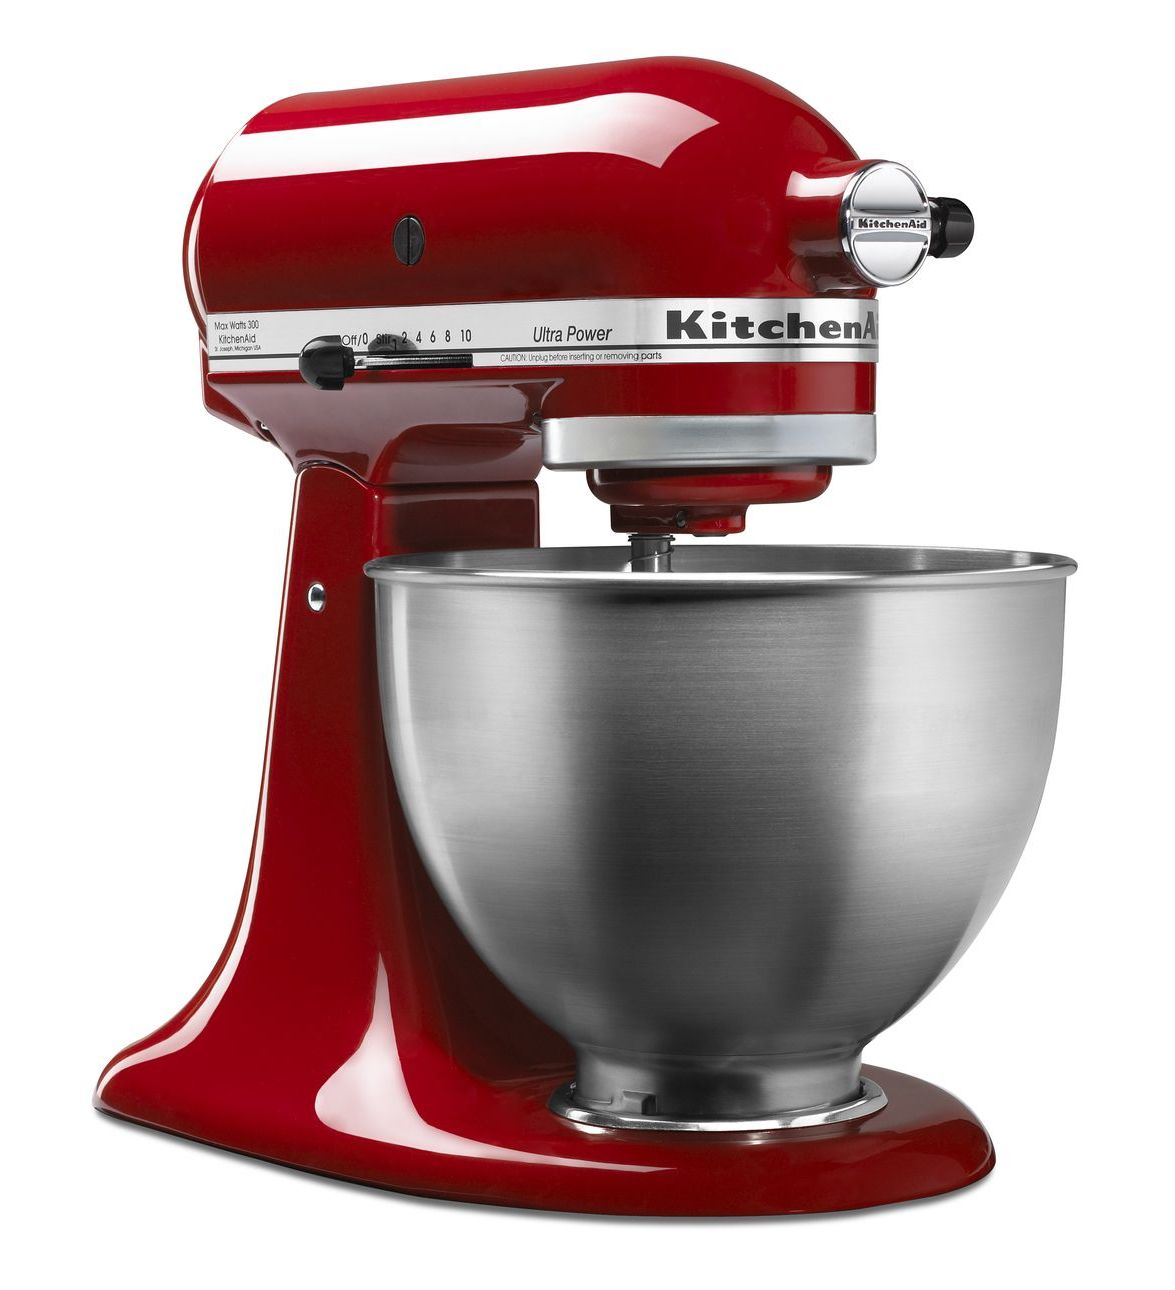 Kitchenaid ultra power mixer photo - 1